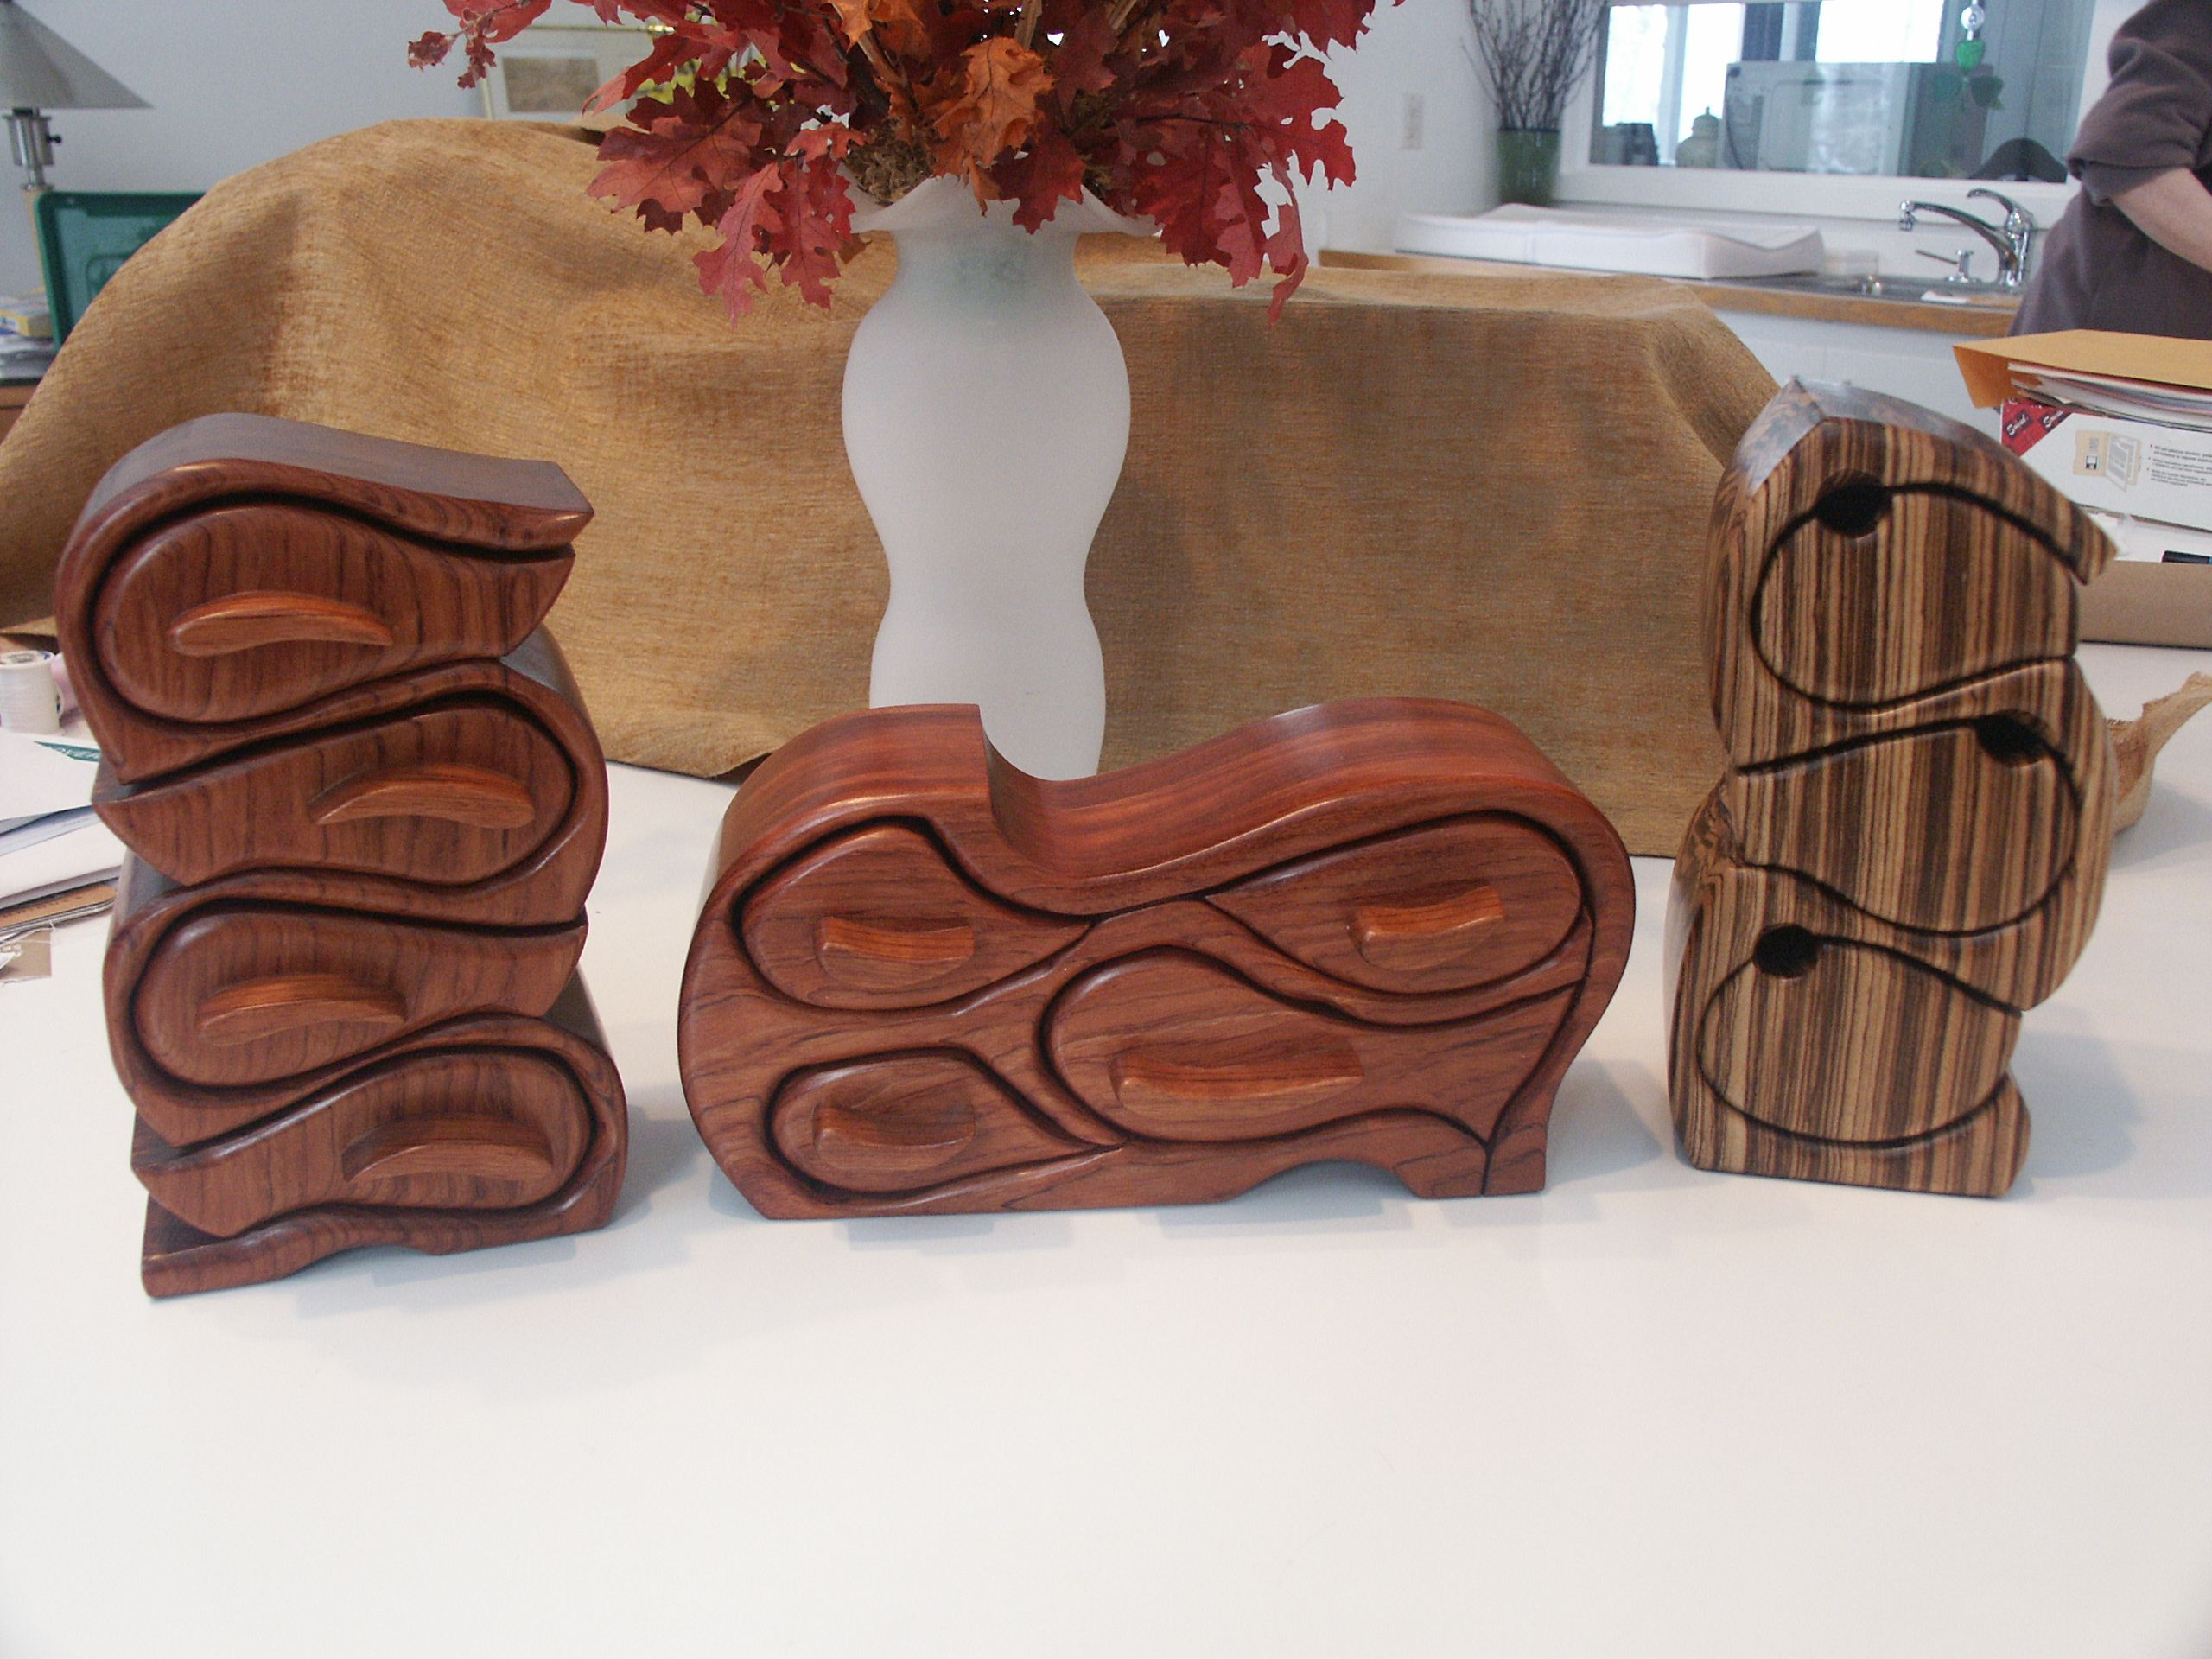 Band saw boxes for xmas gifts woodworking pinterest xmas